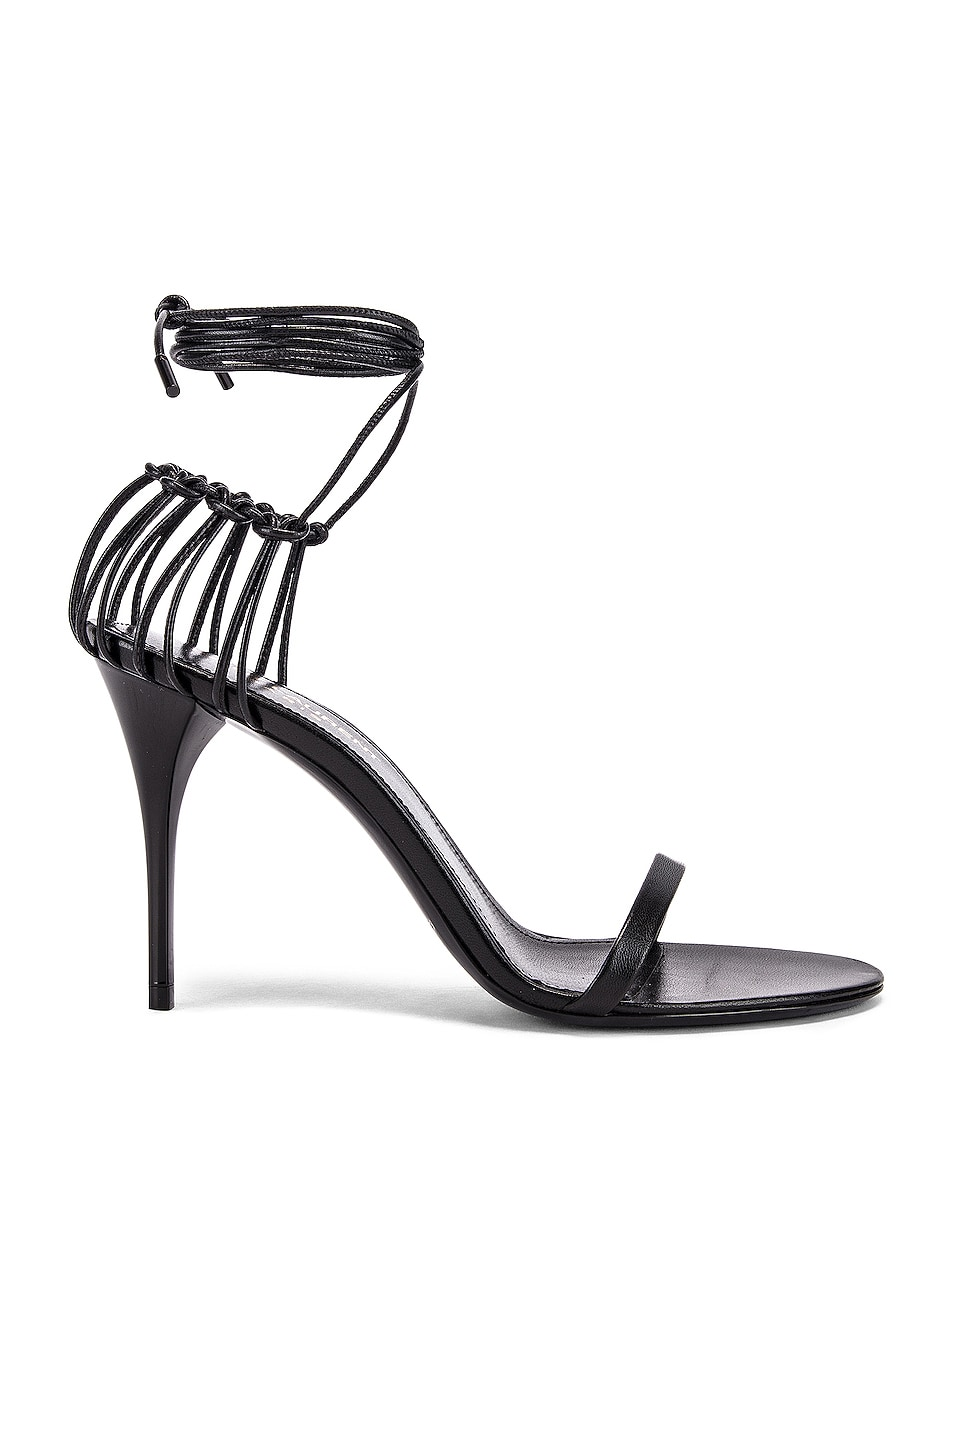 Image 1 of Saint Laurent Lexi Sandals in Black